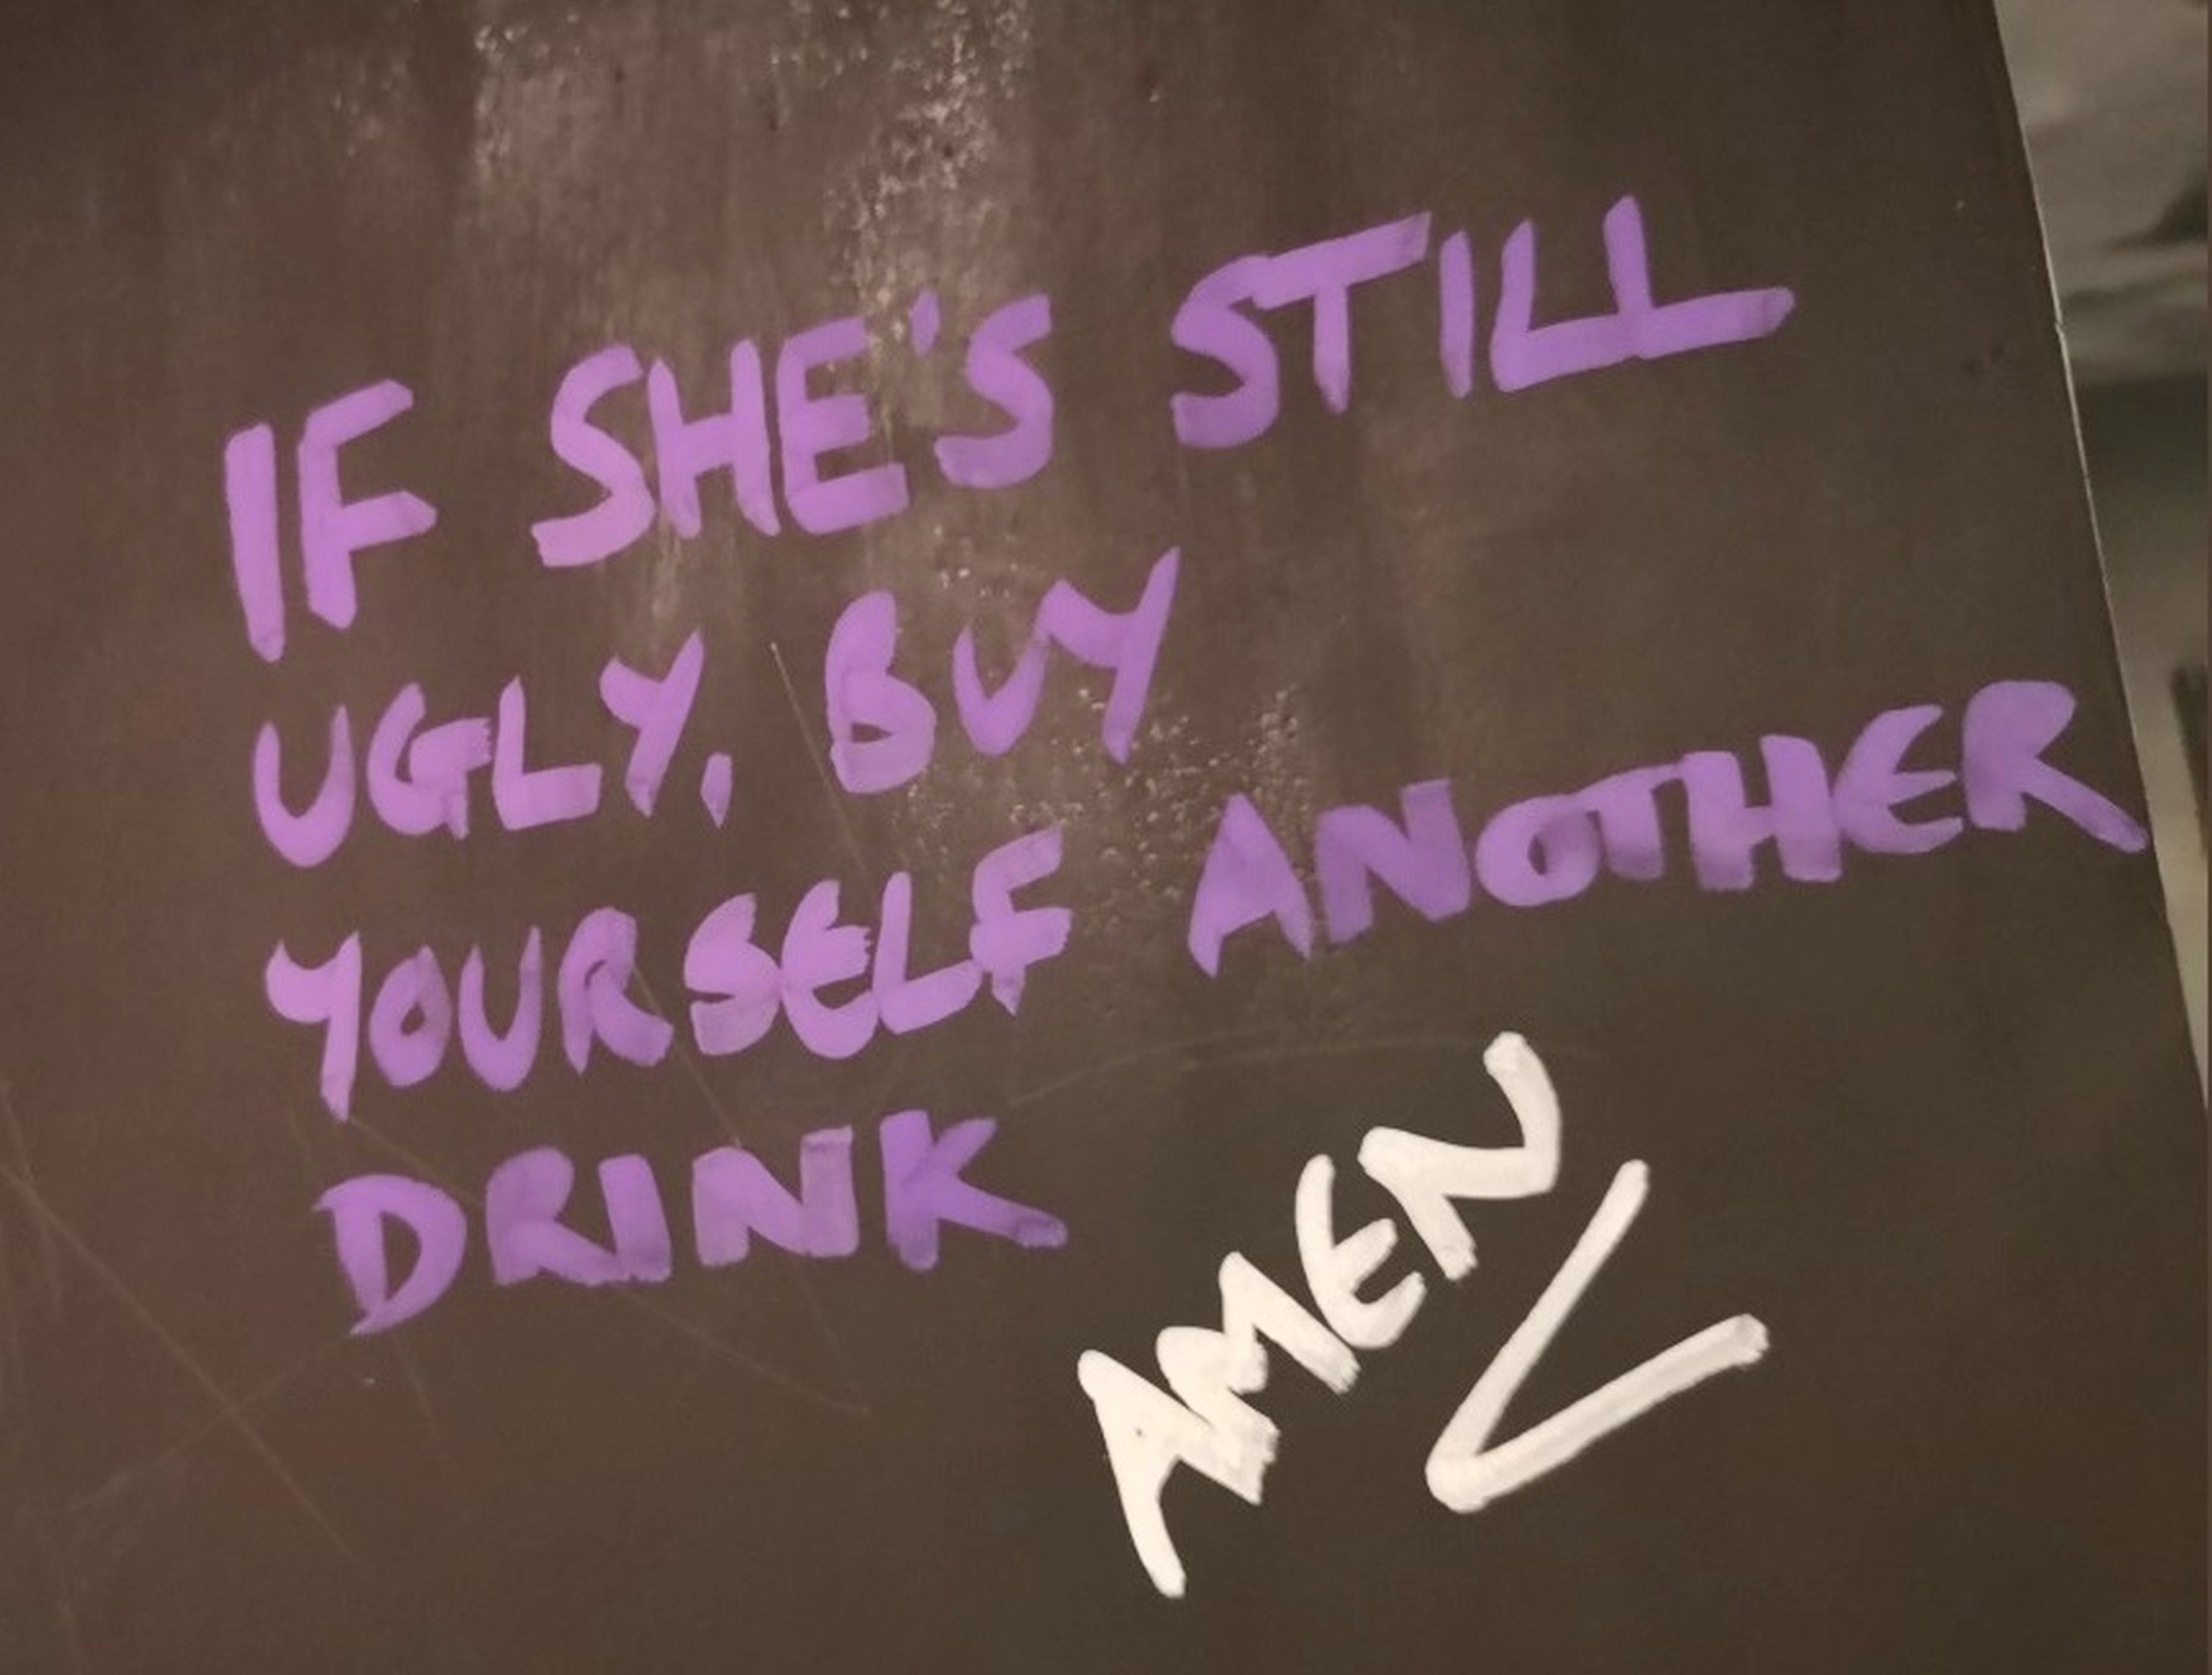 Another note suggested that a man should drink more beer if they find a woman ugly. Credit: Kennedy News and Media